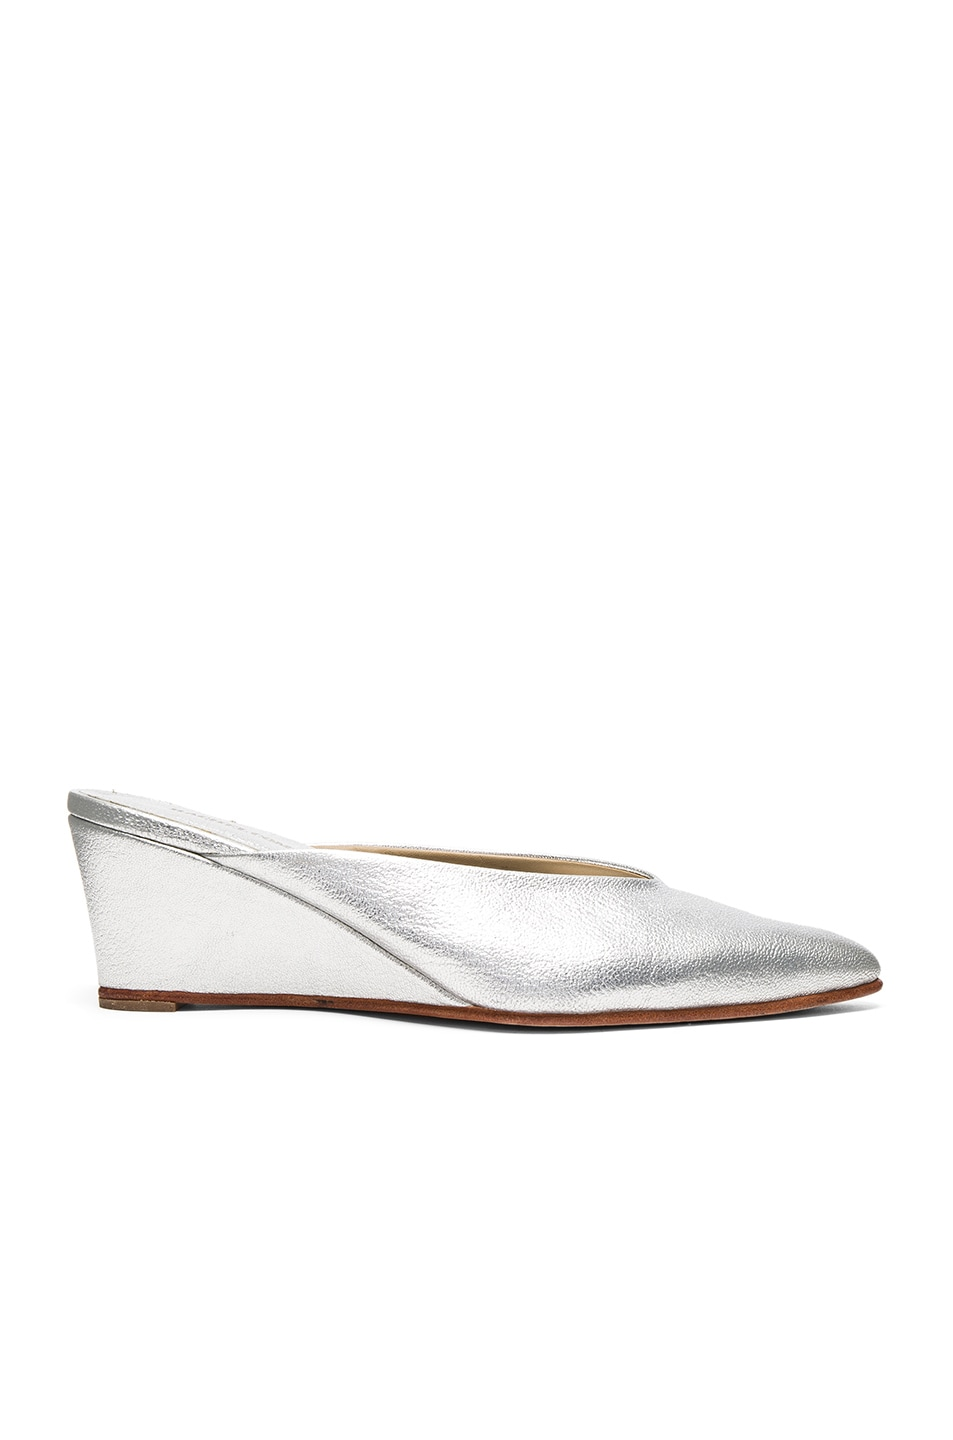 Image 1 of Rachel Comey Simone Wedge in Silver Kidskin